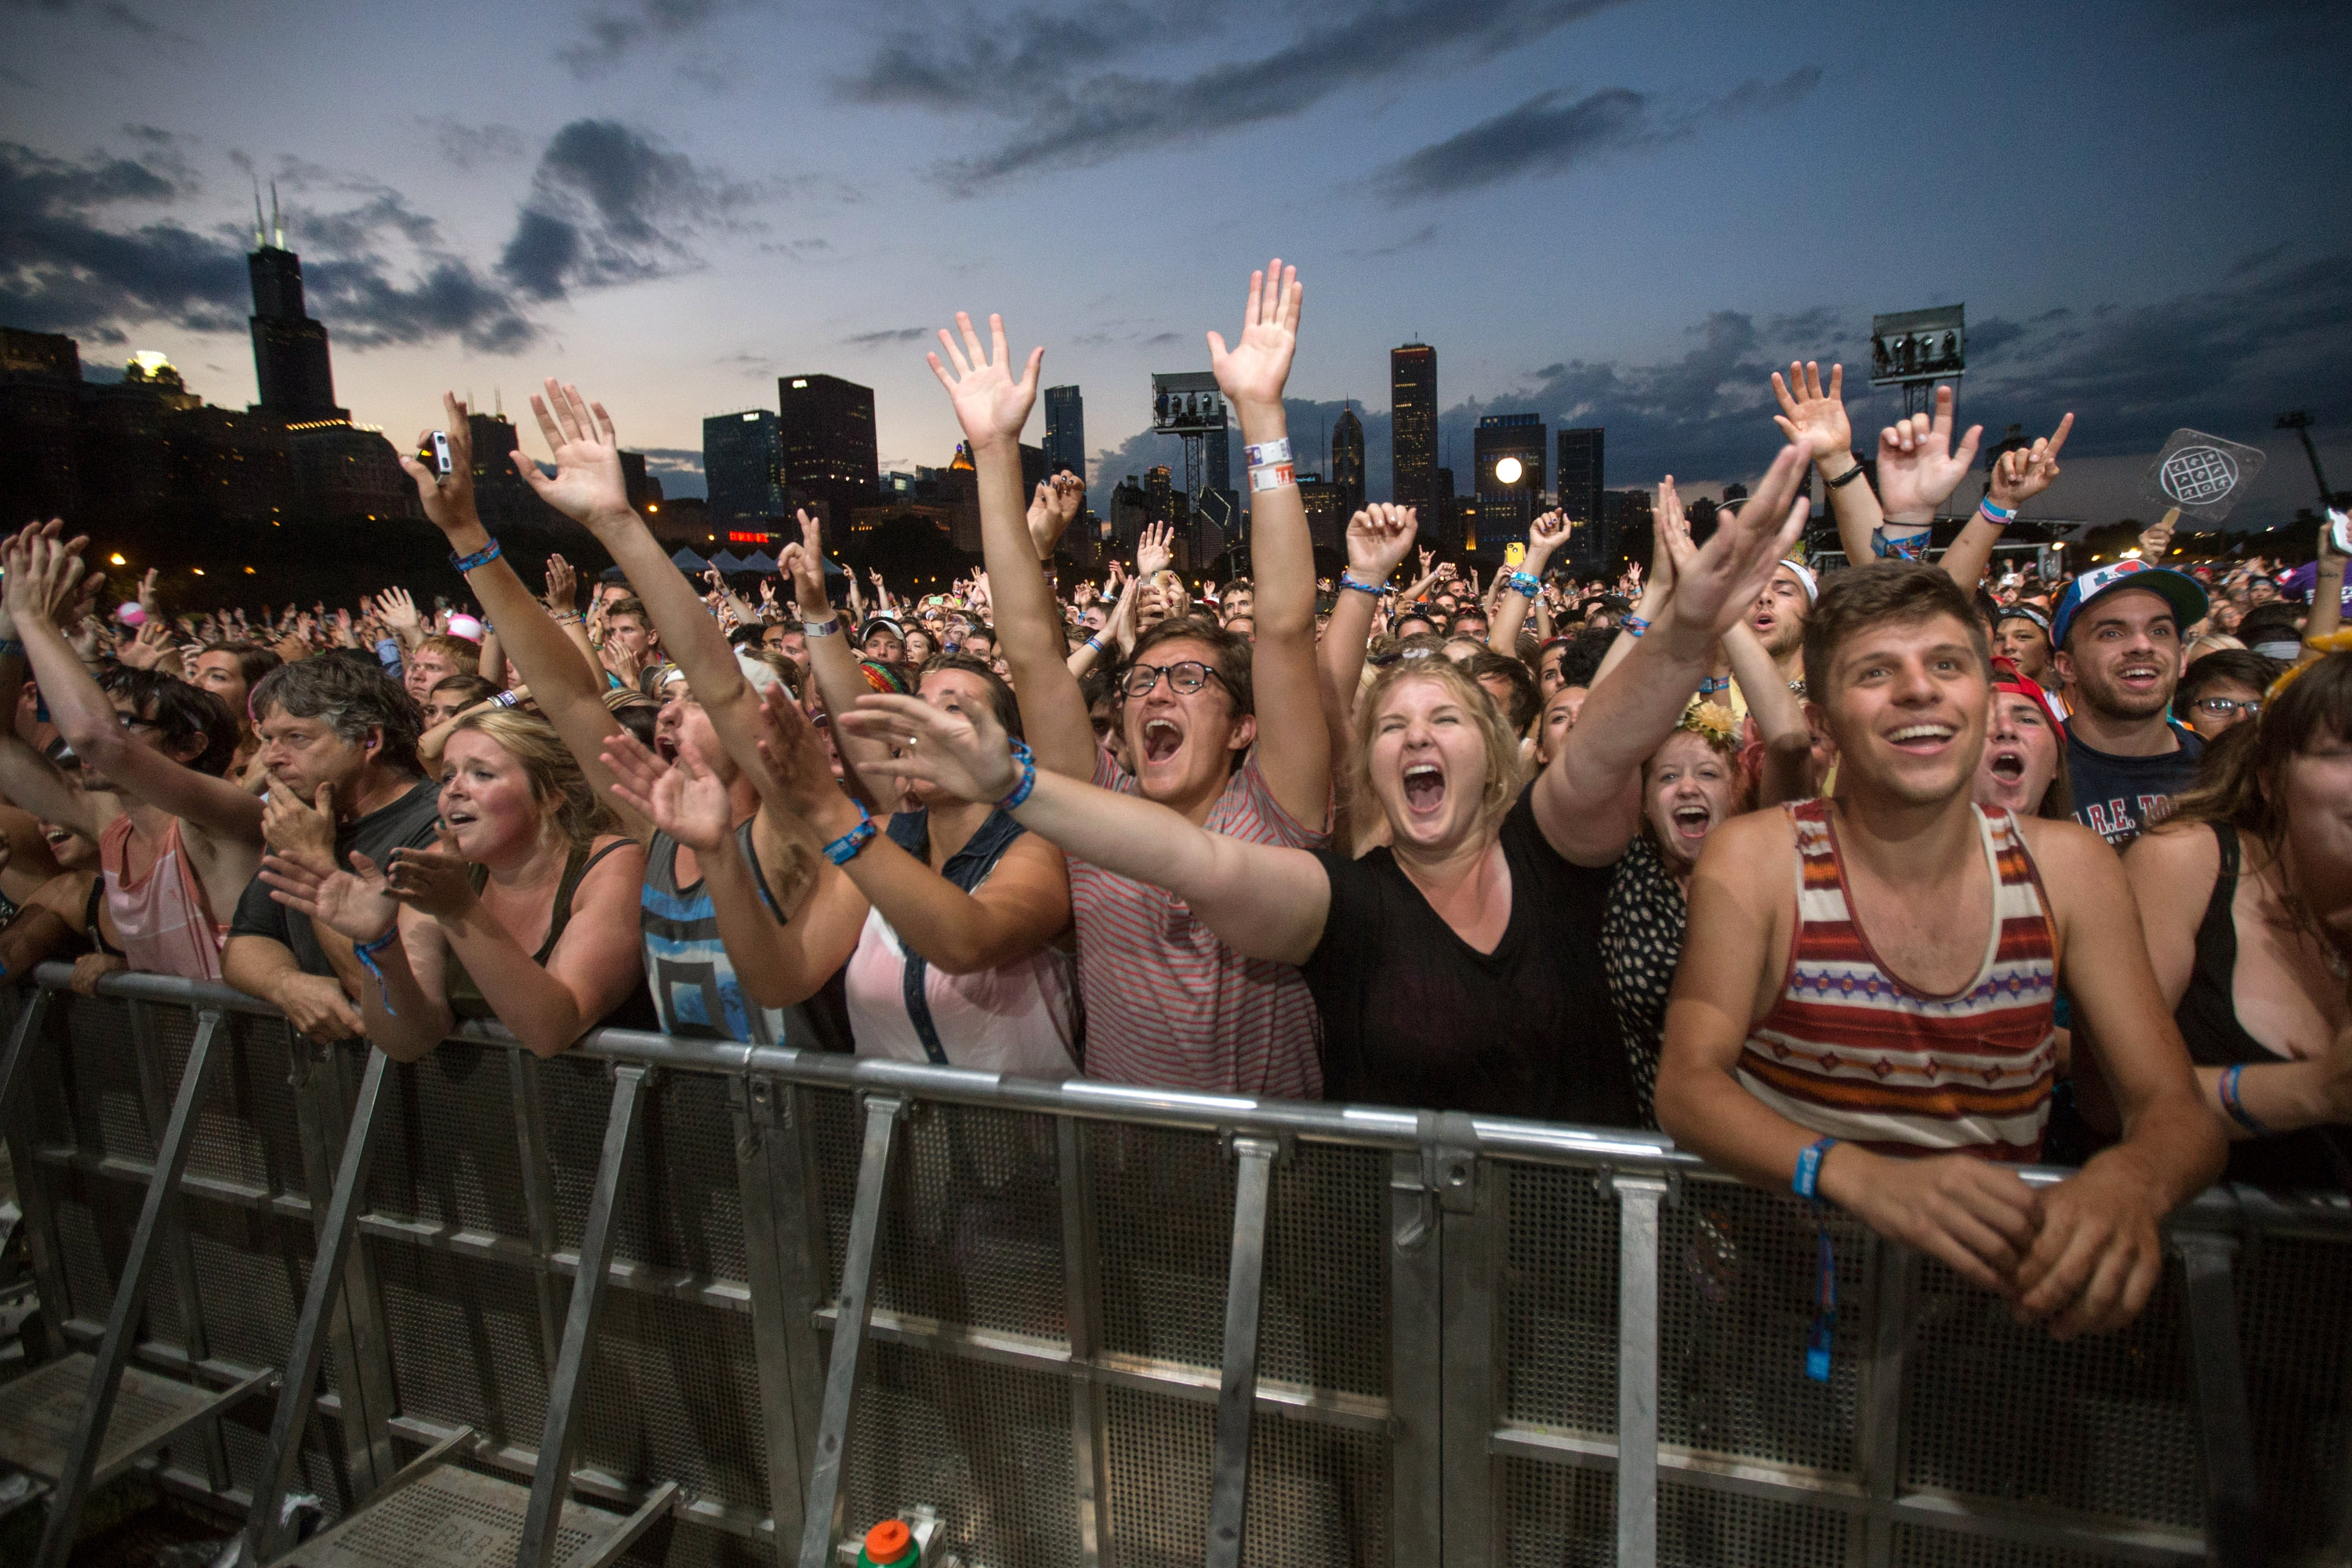 Fans watch Mumford & Sons perform at Lollapalooza last Aug. 3 in Chicago. The festival turns 10 this year.